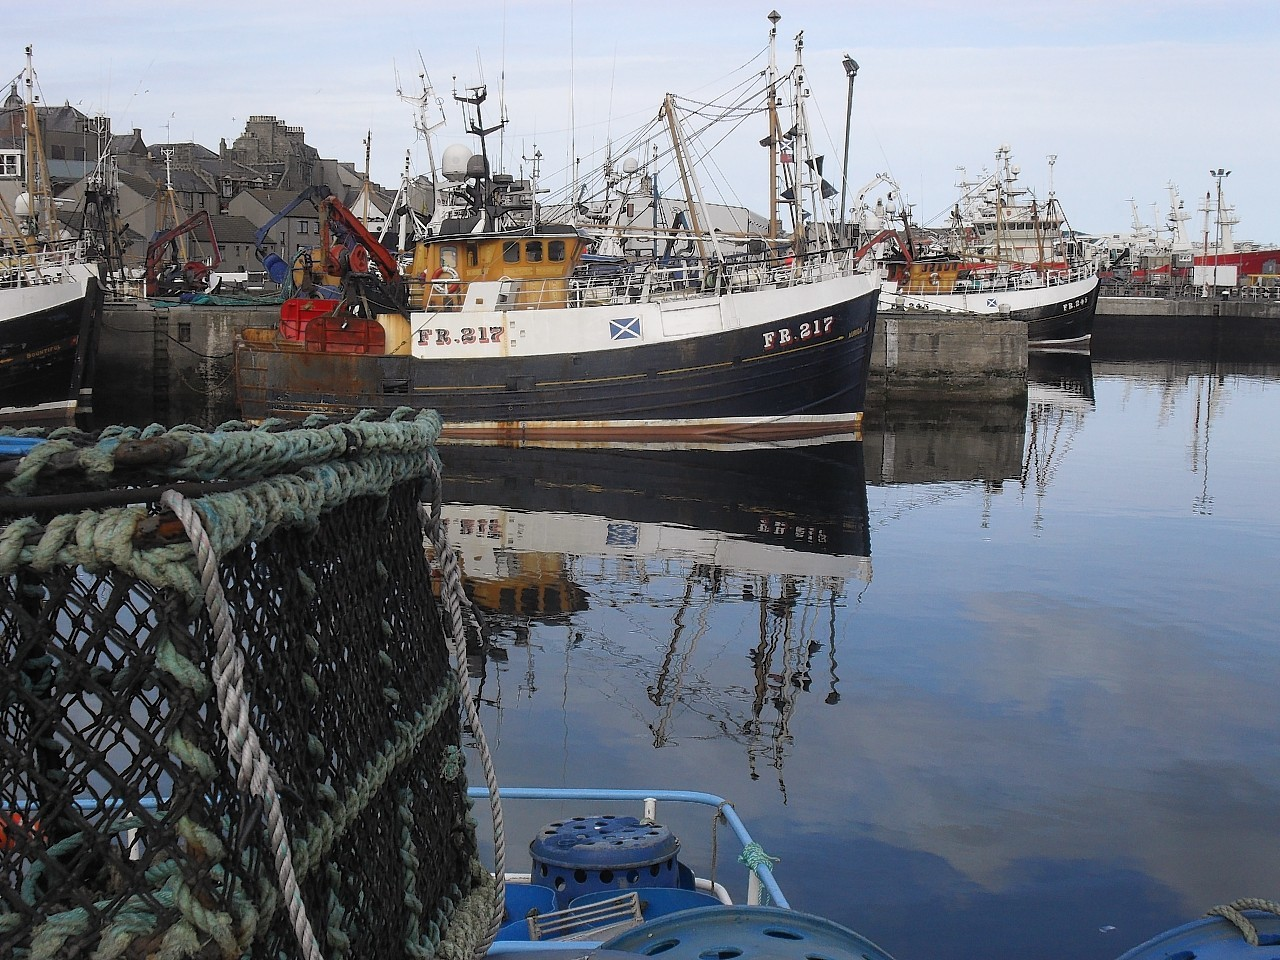 Many challenges lie ahead for the Scottish fleet